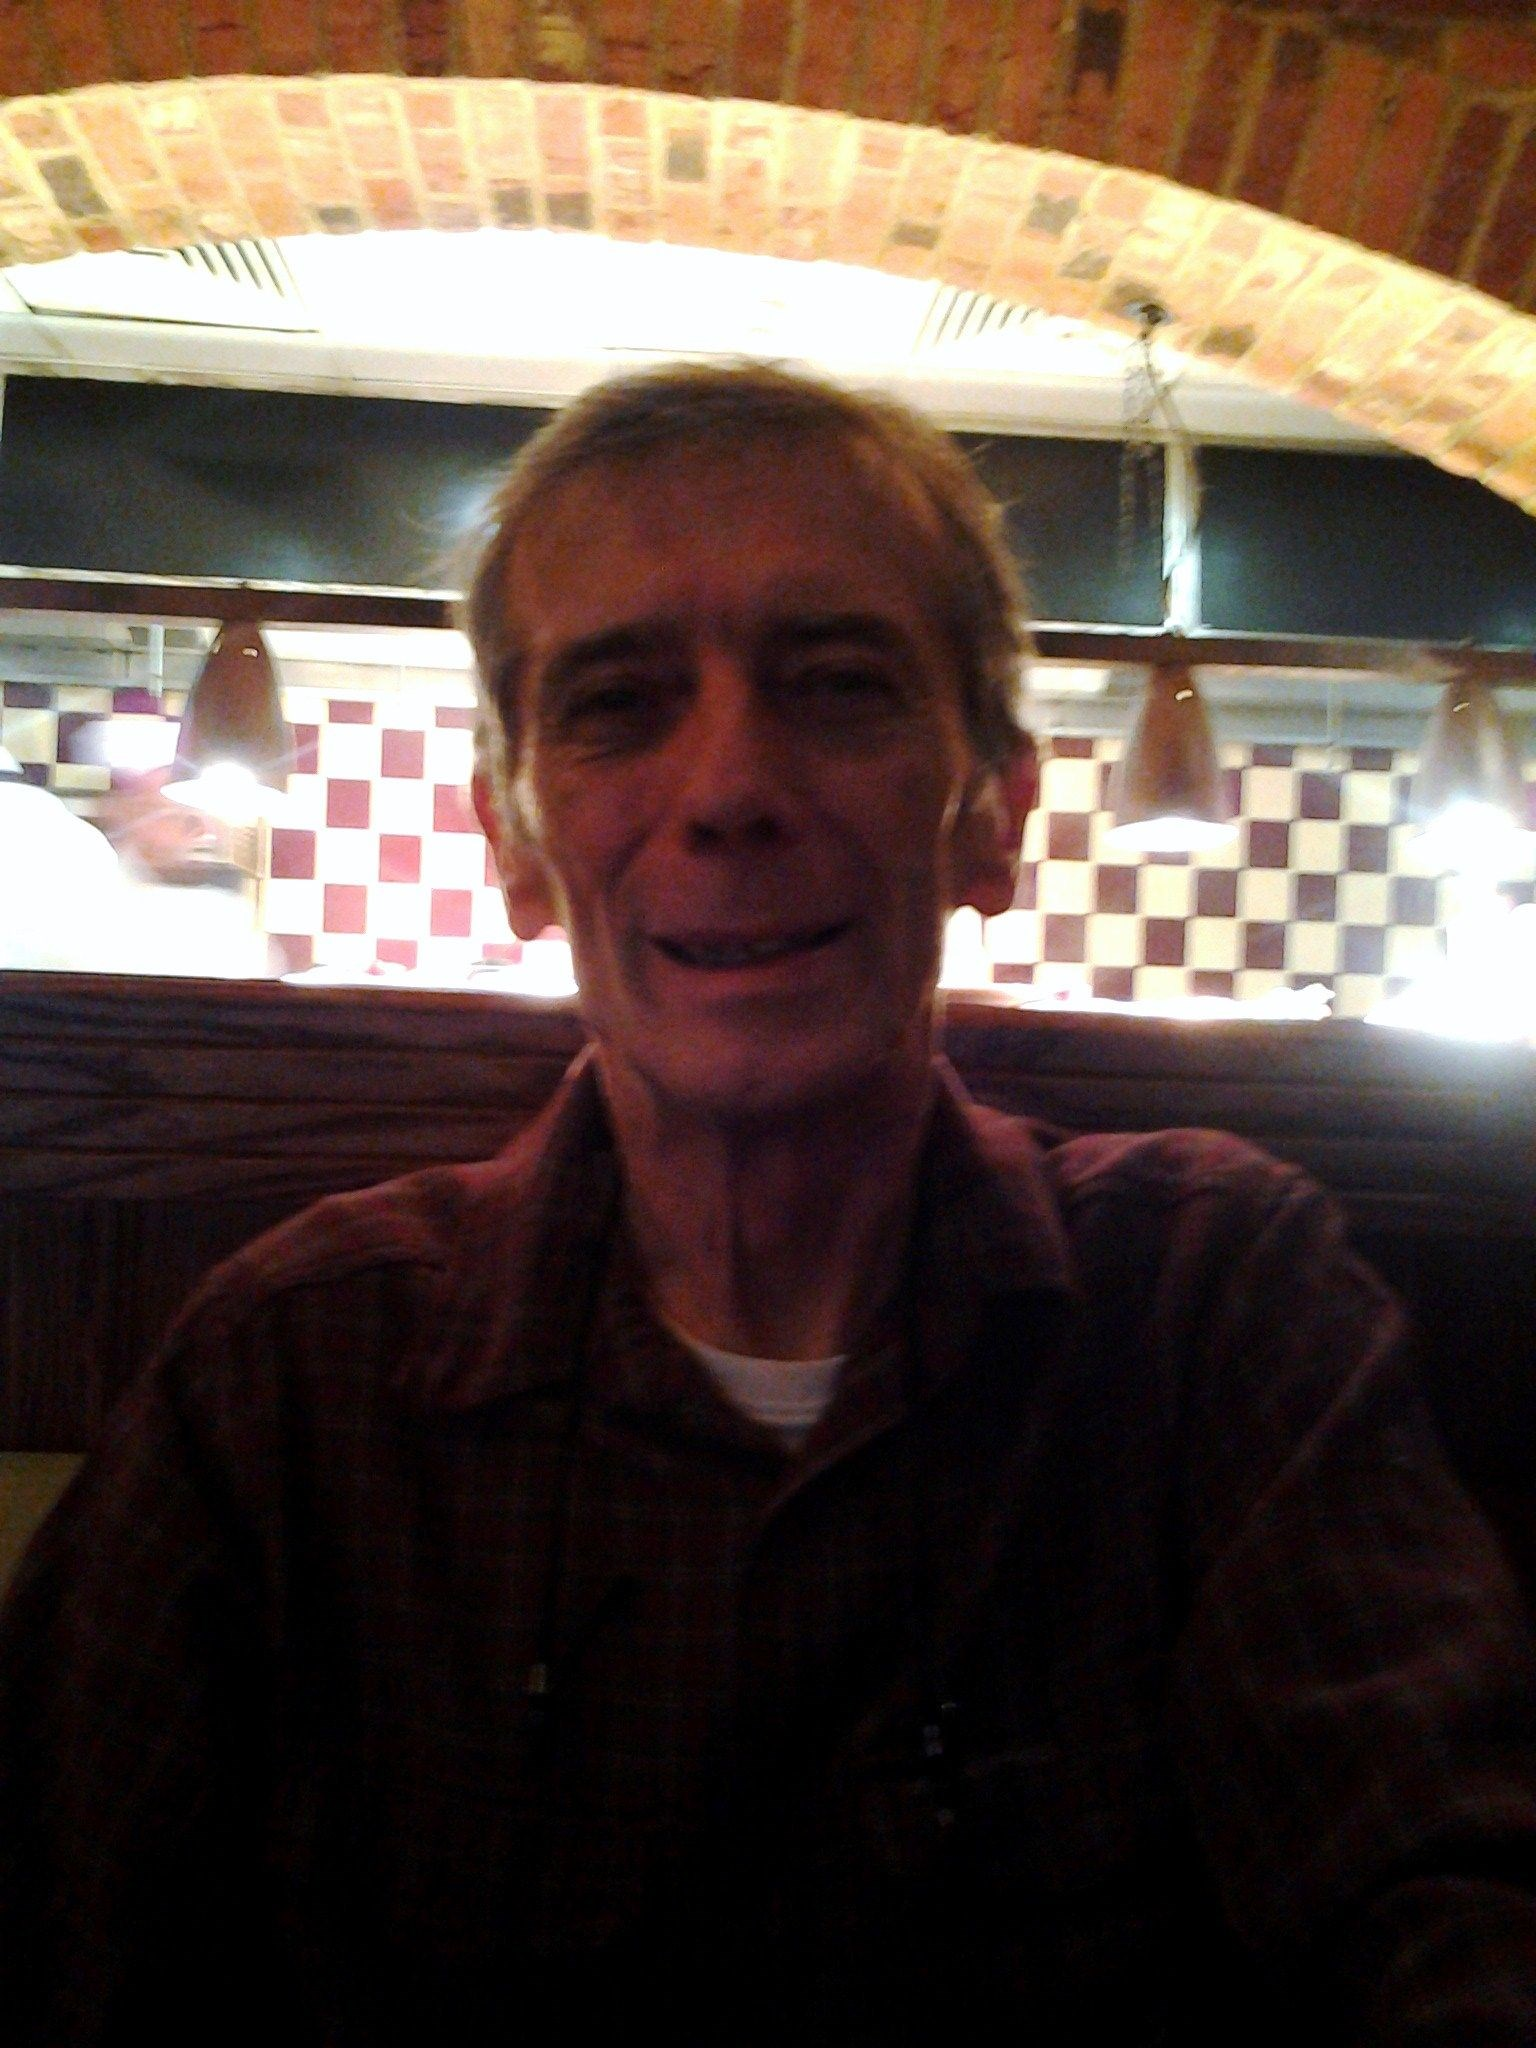 Tony at Frankie and Benny's, Cribbs Causeway, before we watched The film Ted.